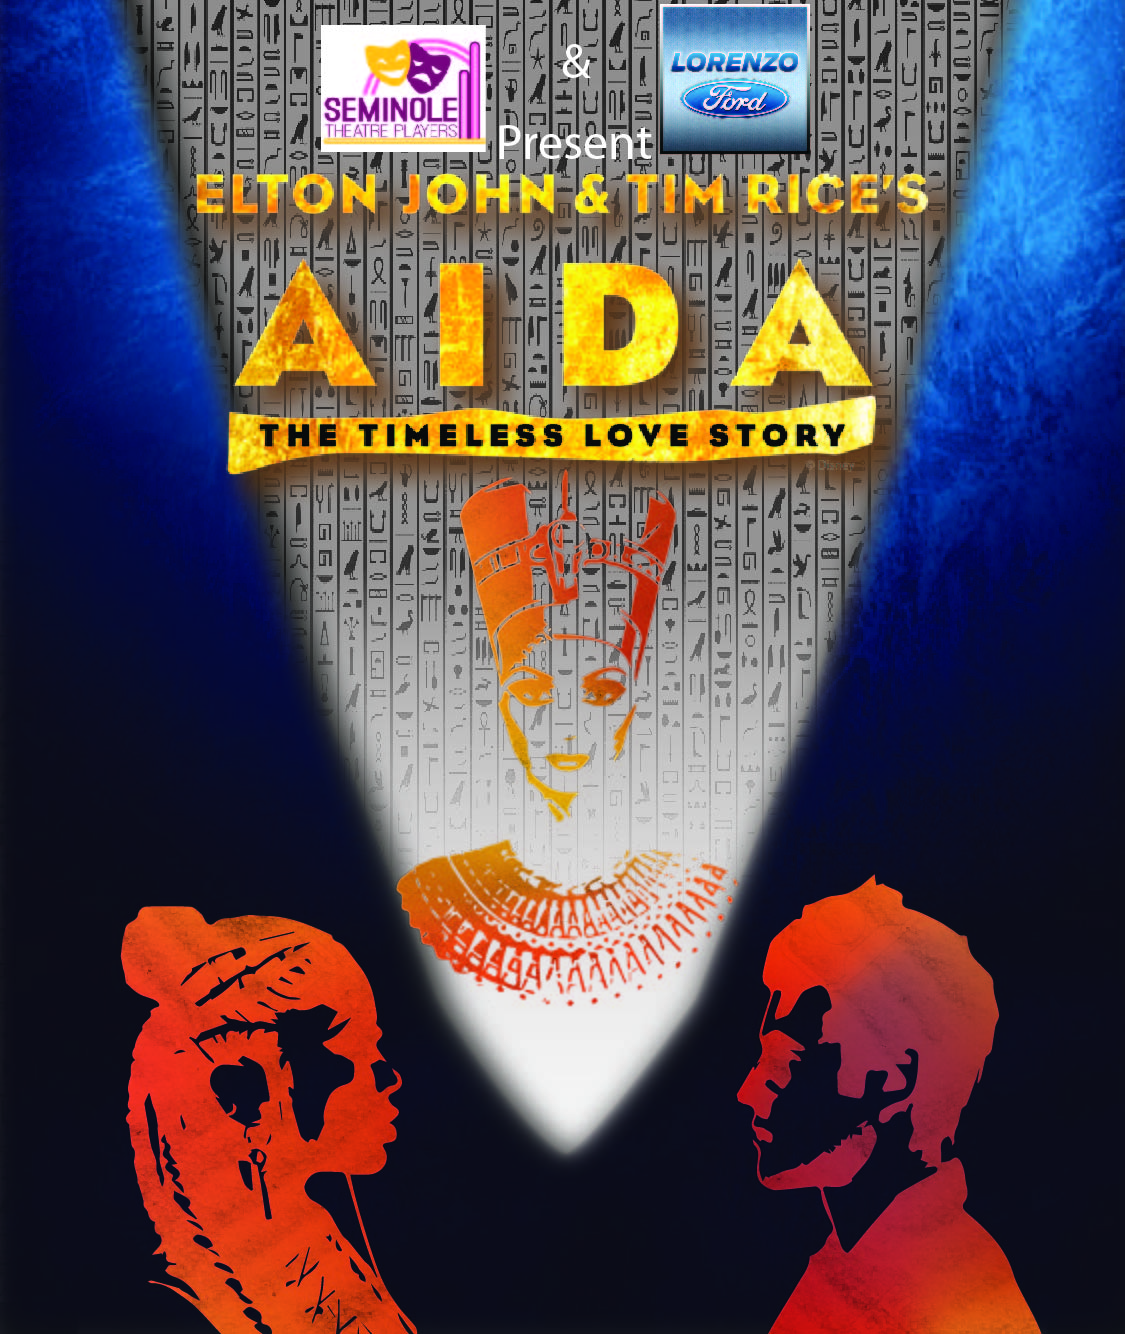 Aida- Friday, June 28